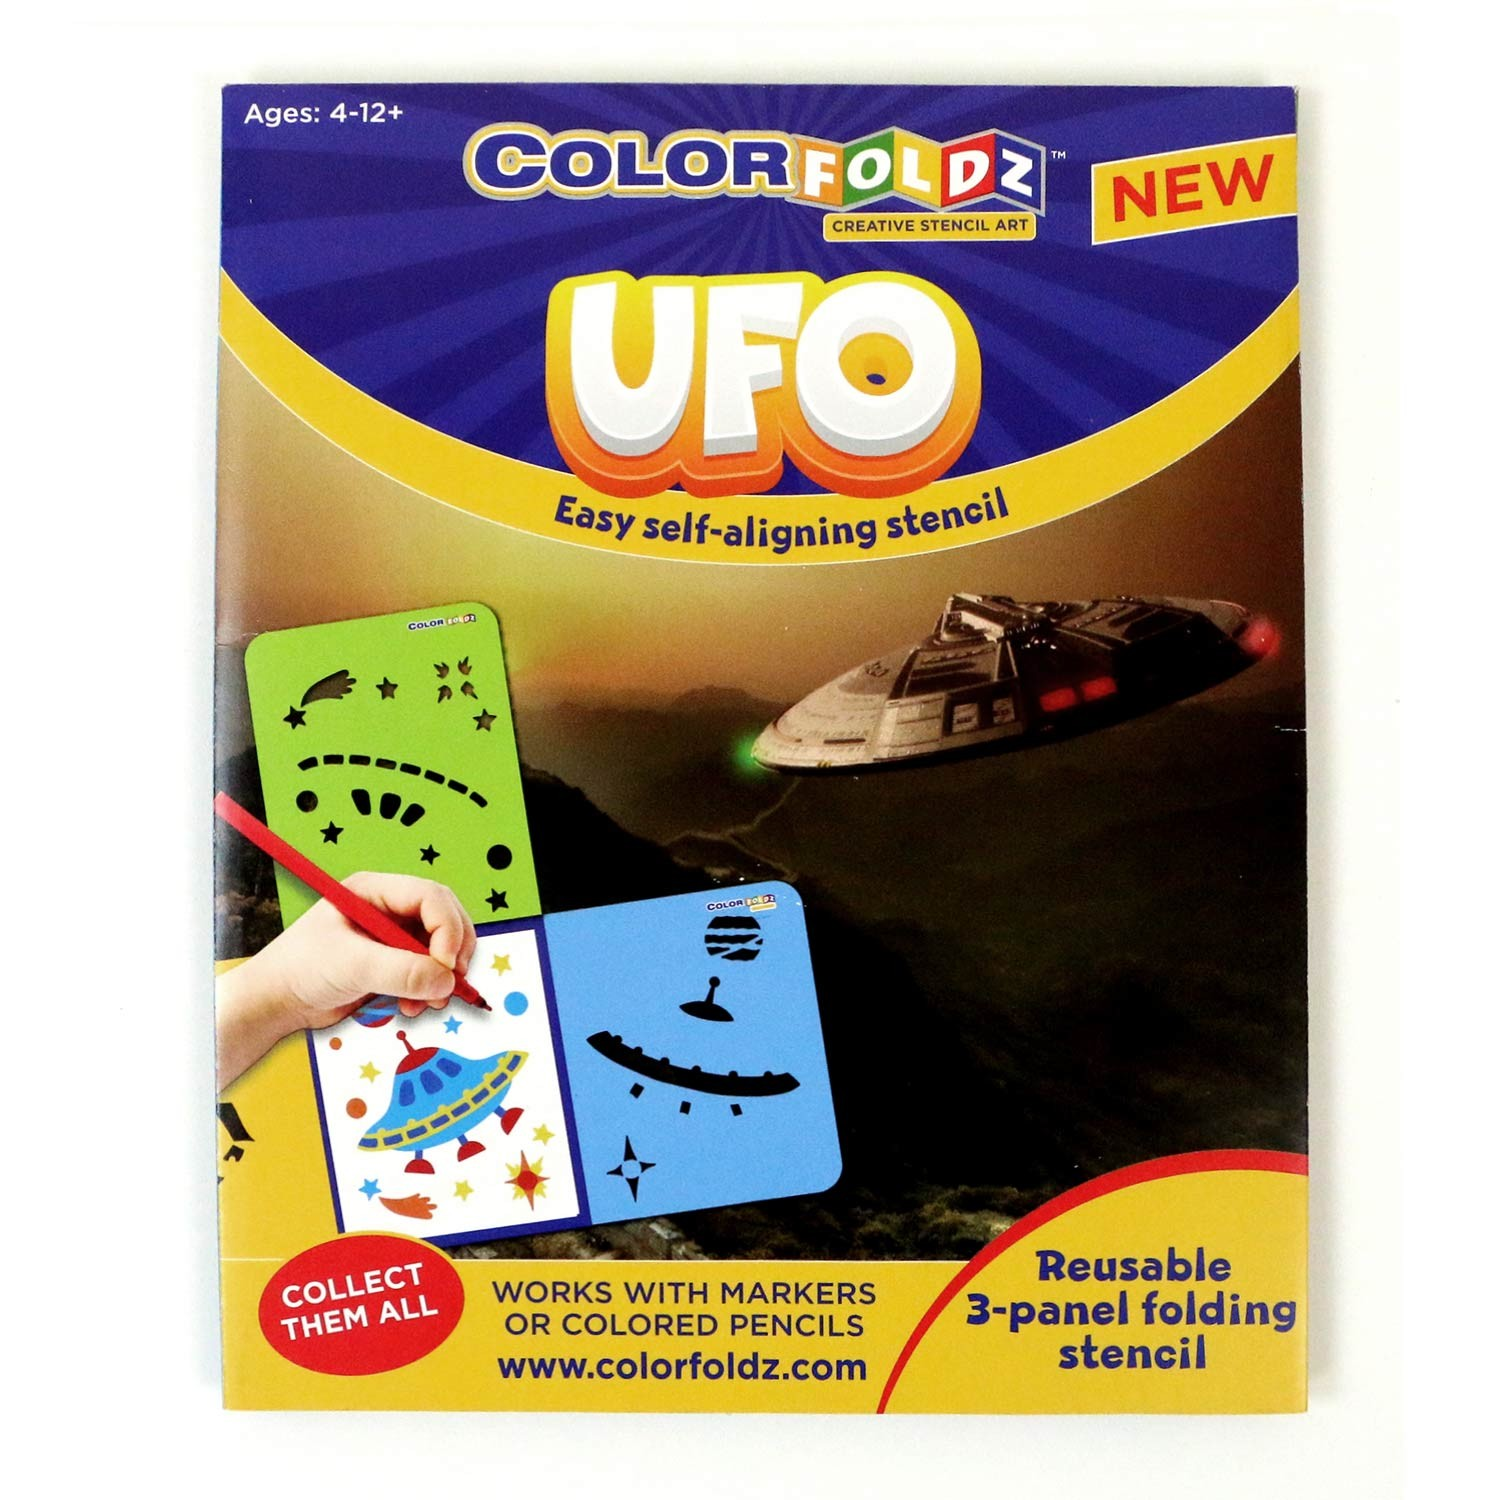 UFO ColorFoldz Self-Aligning Stencil